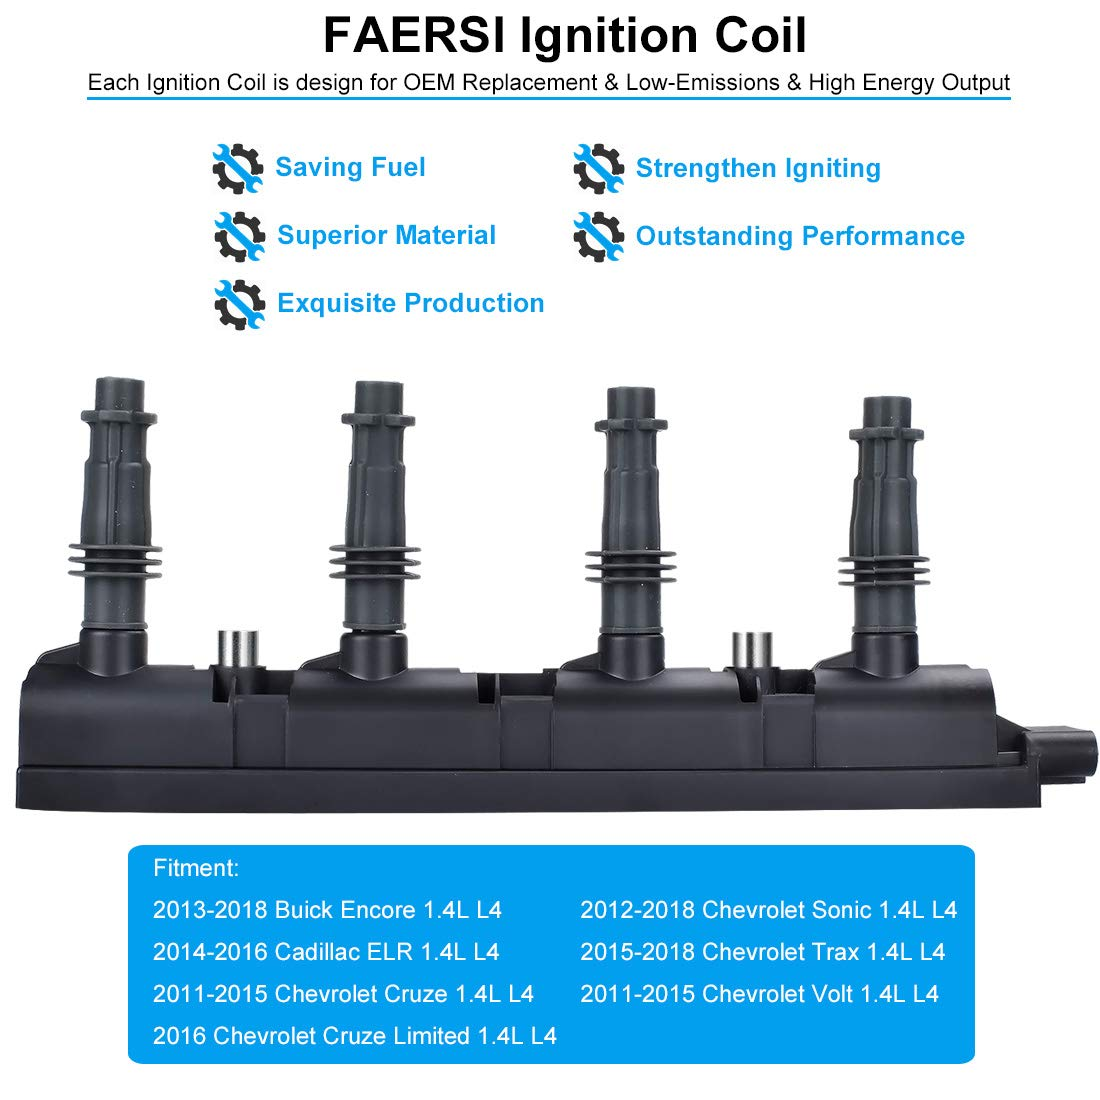 Ignition Coil Pack of 1 Replace OE# D521C, 55579072 for 1 4L - 2013-2018  Buick Encore, 2014-2016 Cadillac ELR, 2011-2015 Chevy Cruze, 2012-2018  Chevy